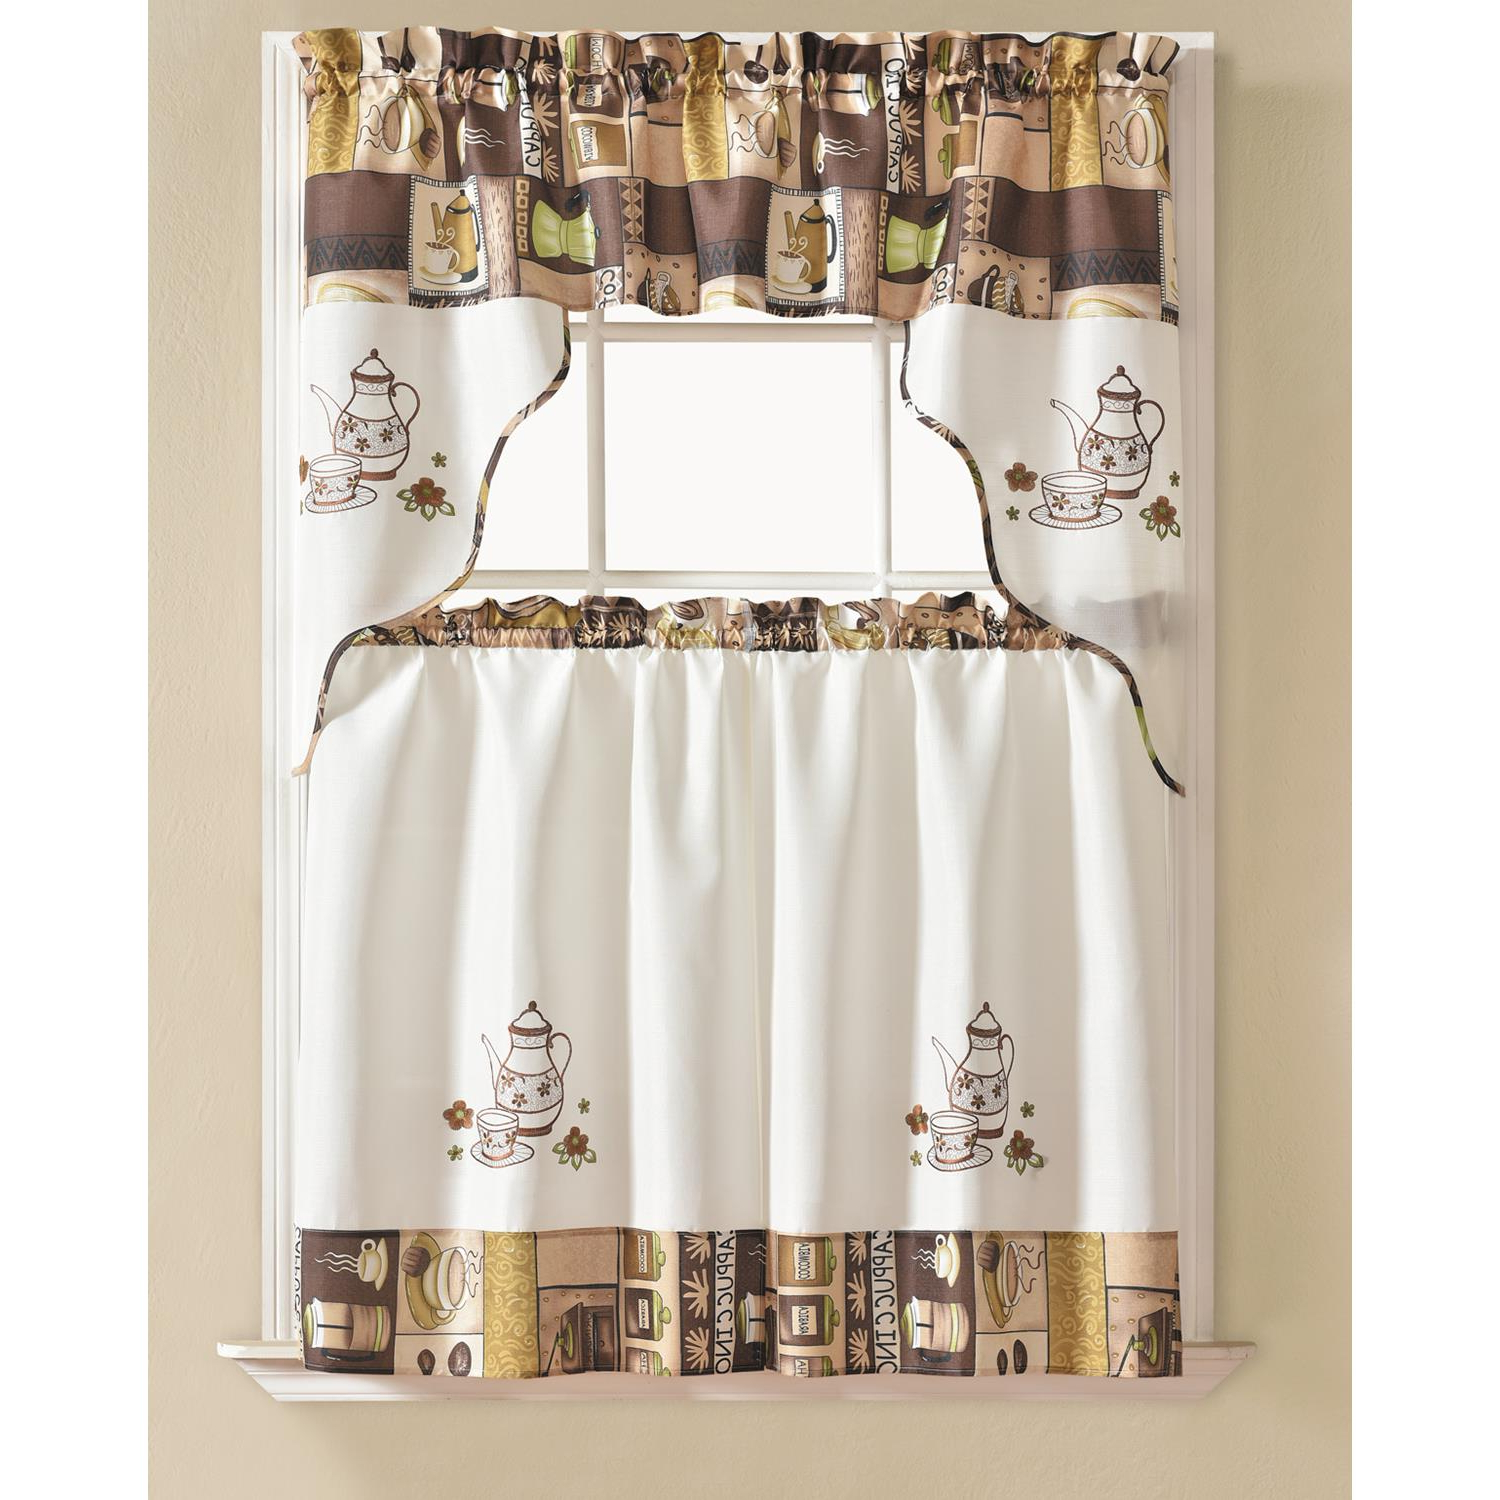 2020 Urban Embroidered Tier And Valance Kitchen Curtain Tier Sets For Details About Urban Embroidered Coffee Tier And Valance Kitchen Curtain Set (View 3 of 20)